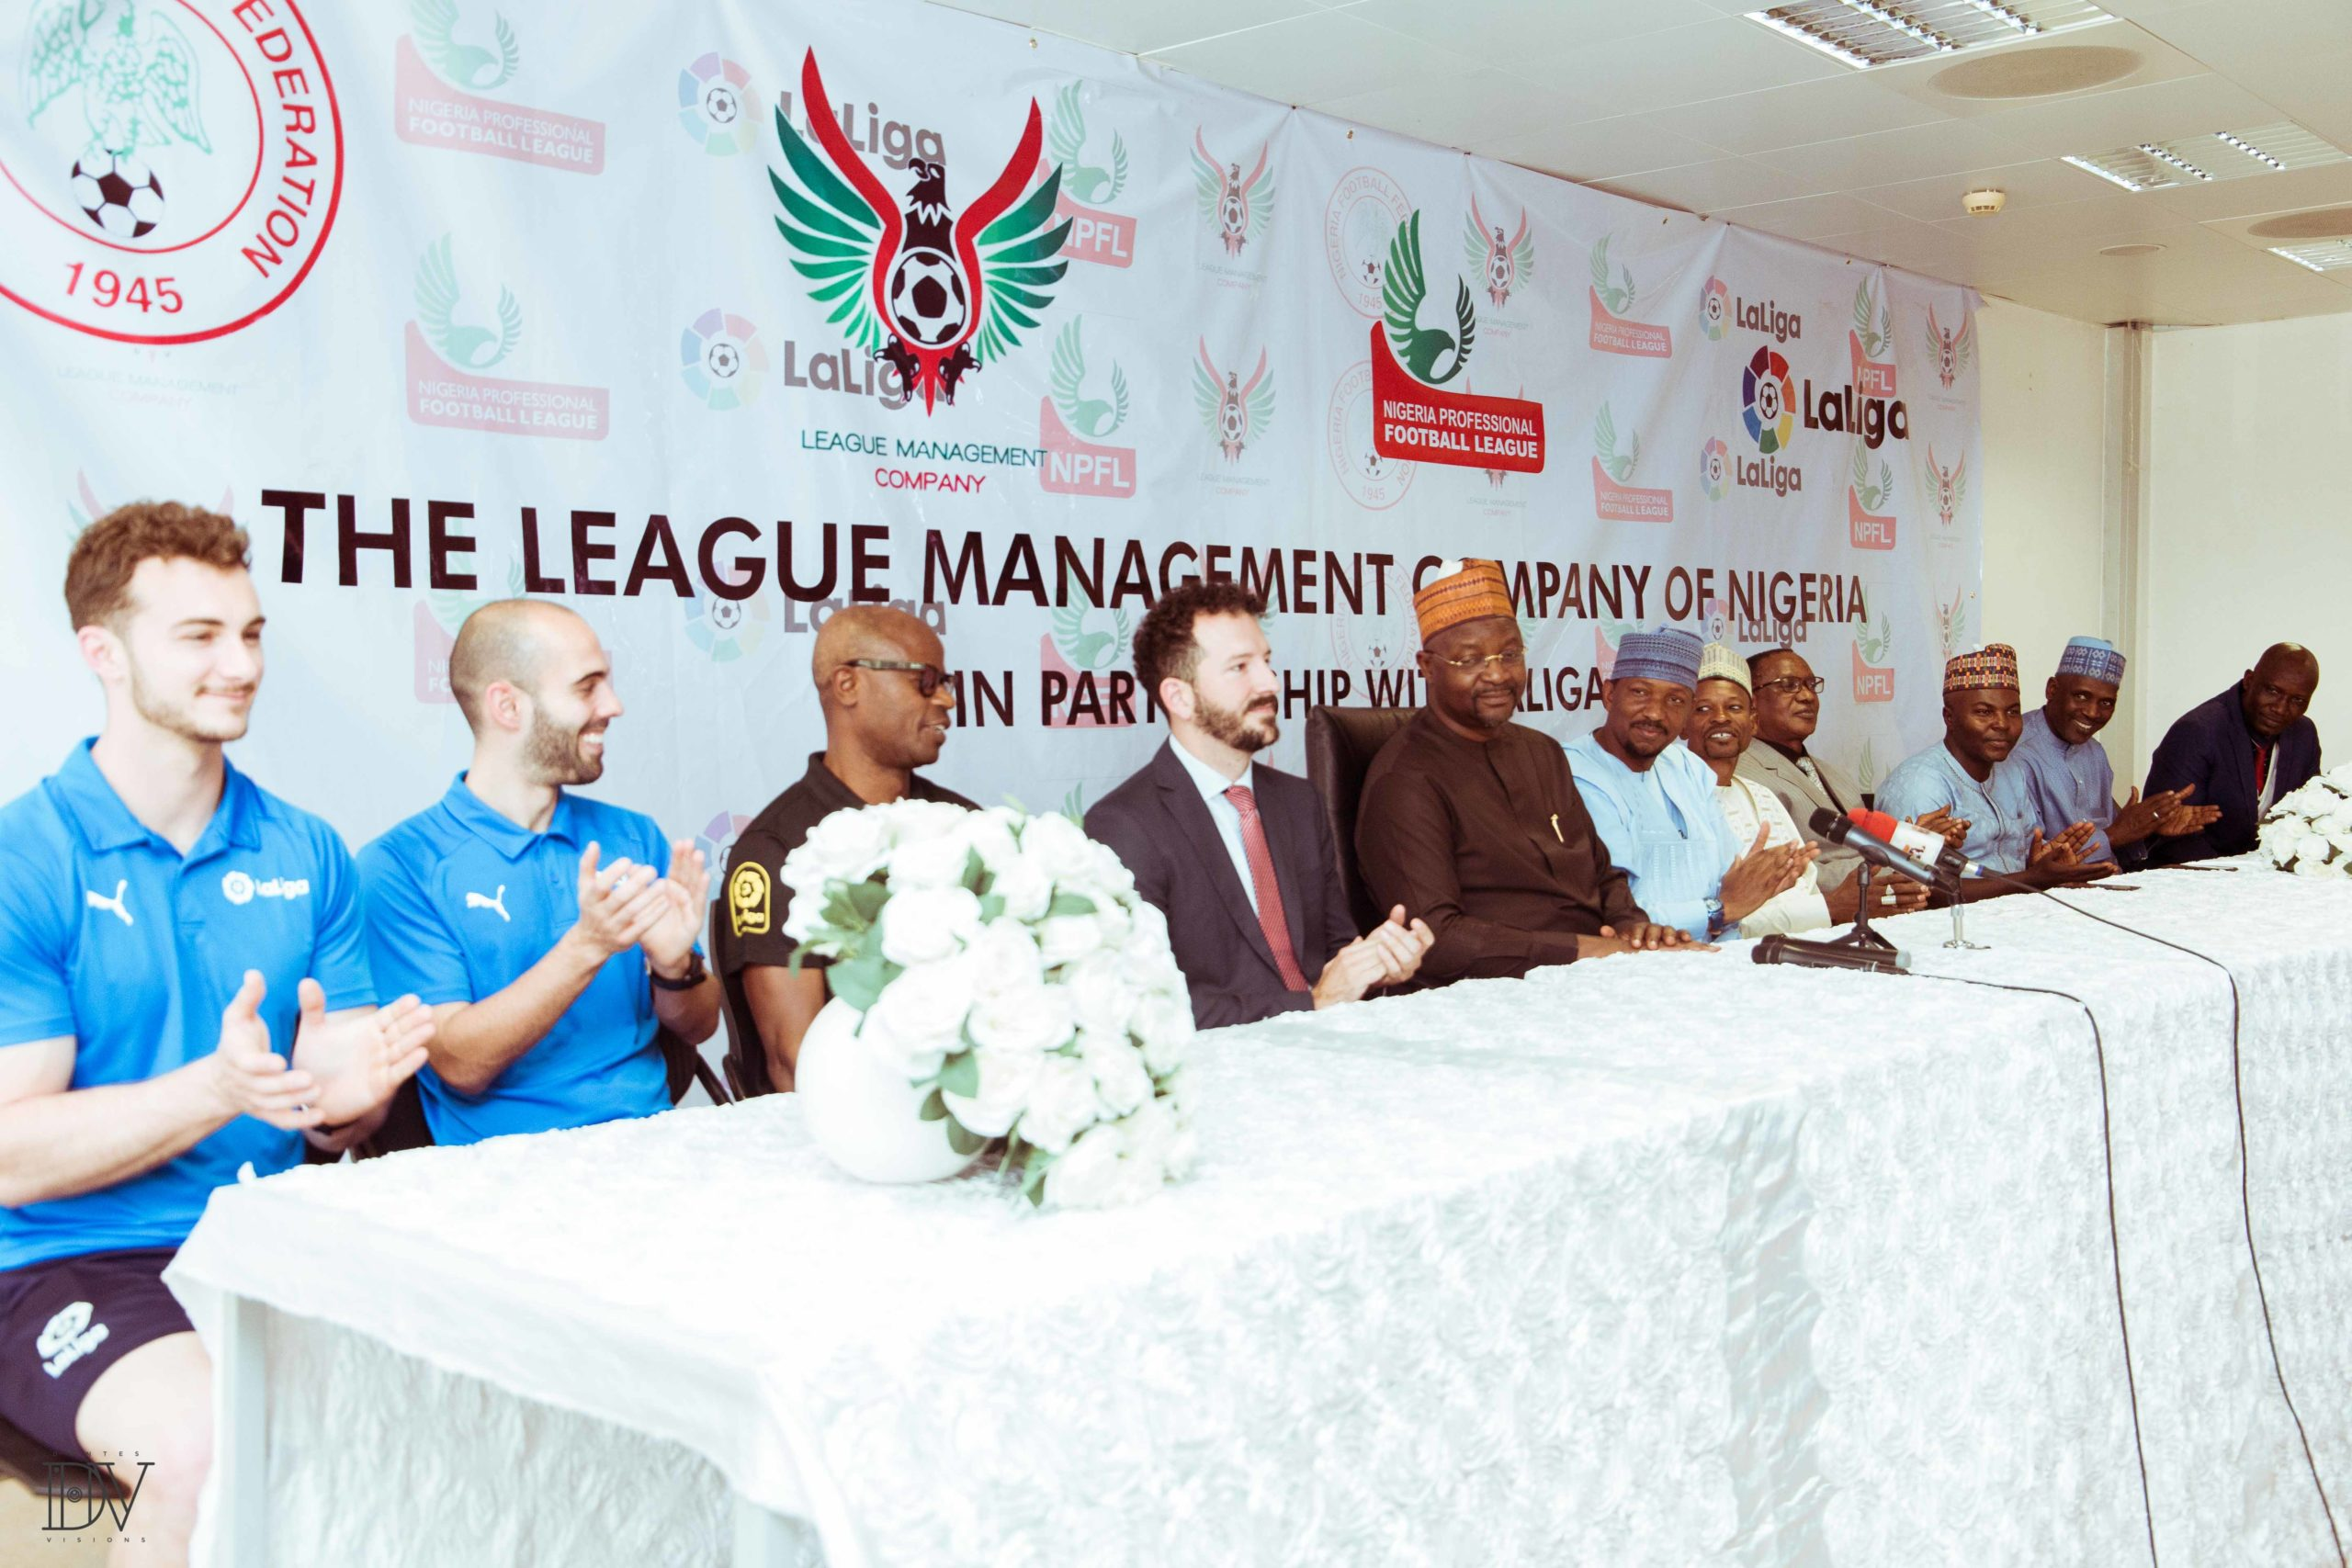 More Than 150 Coaches Attended The 4th Edition of The NPFL-LaLiga Coaching Clinic In Abuja - Brand Spur